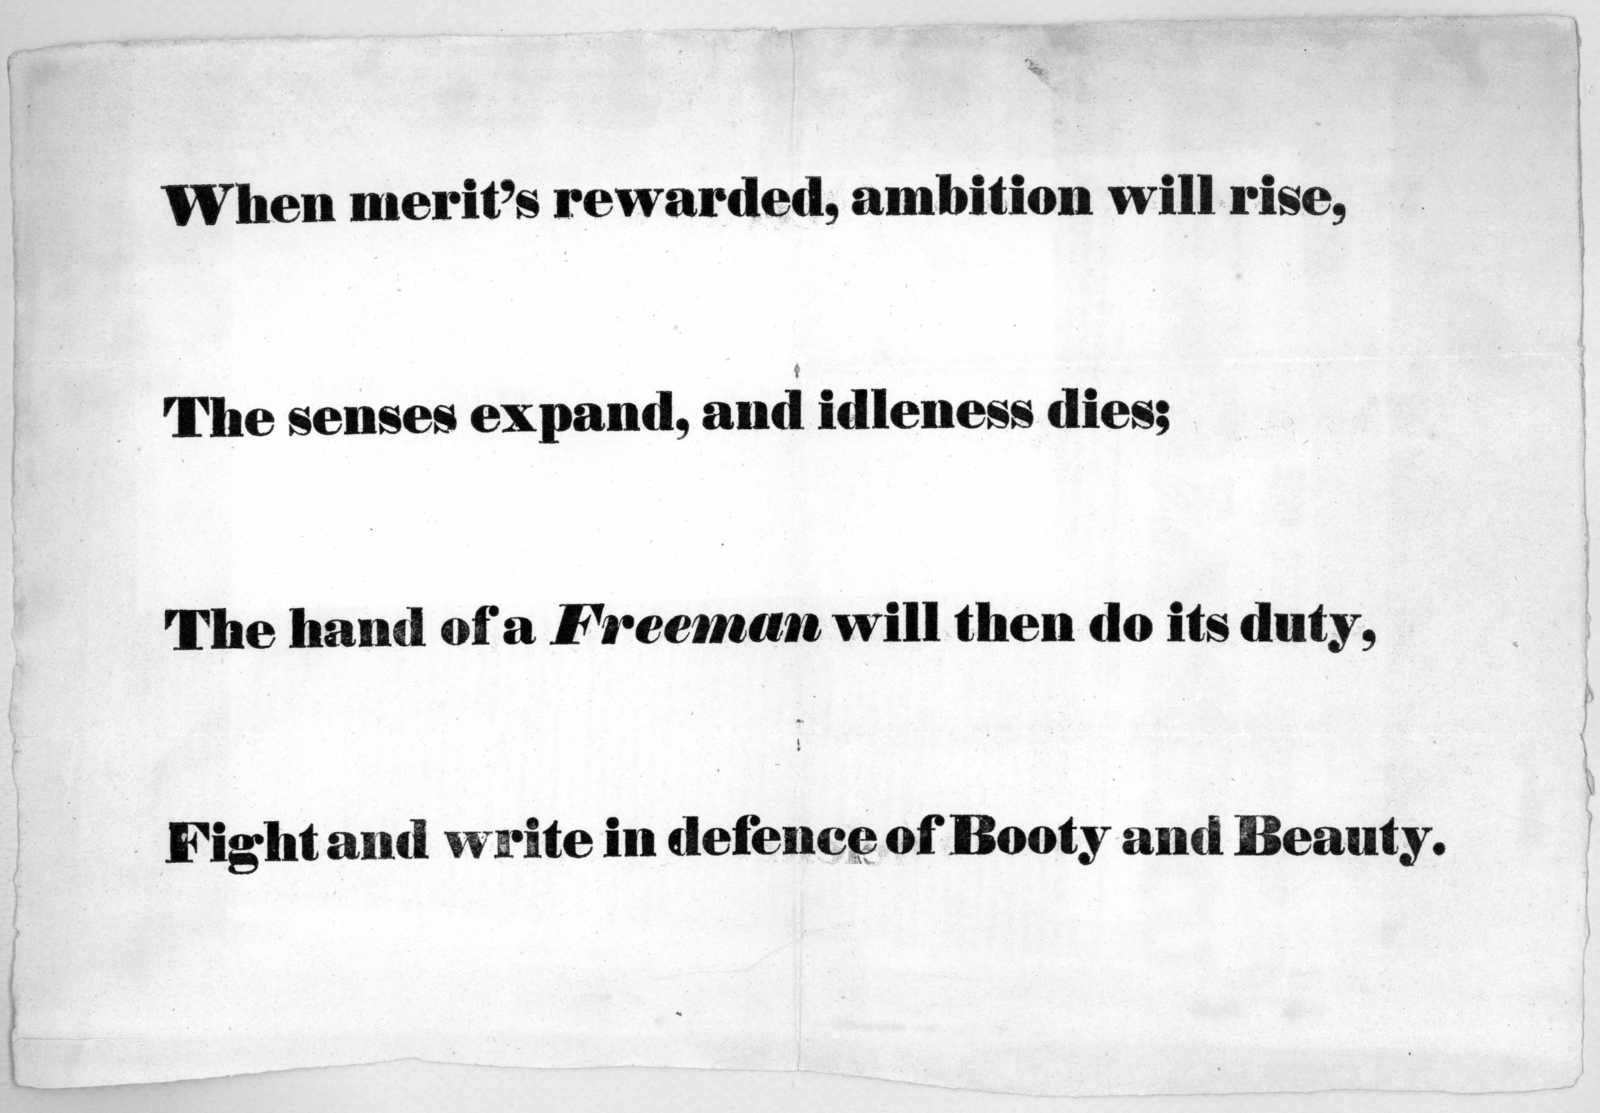 When merit's rewarded, ambition will rise, The senses expand, and idleness dies; The hand of a freeman will then do its duty. Fight and write in defence of booty and beauty.